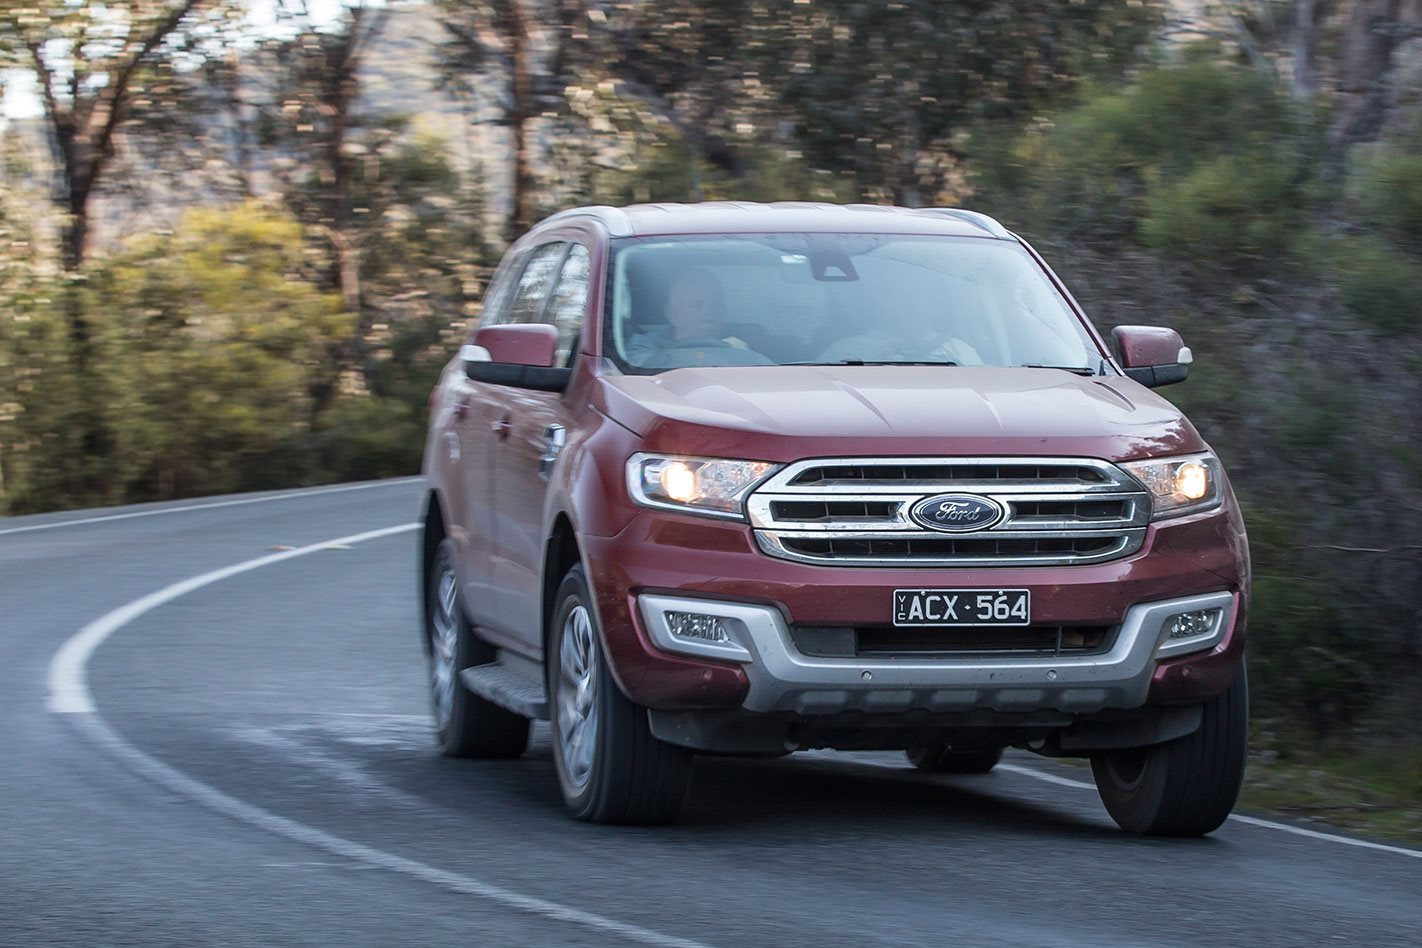 2015 ford everest reviews - 2015 Ford Everest Reviews 40